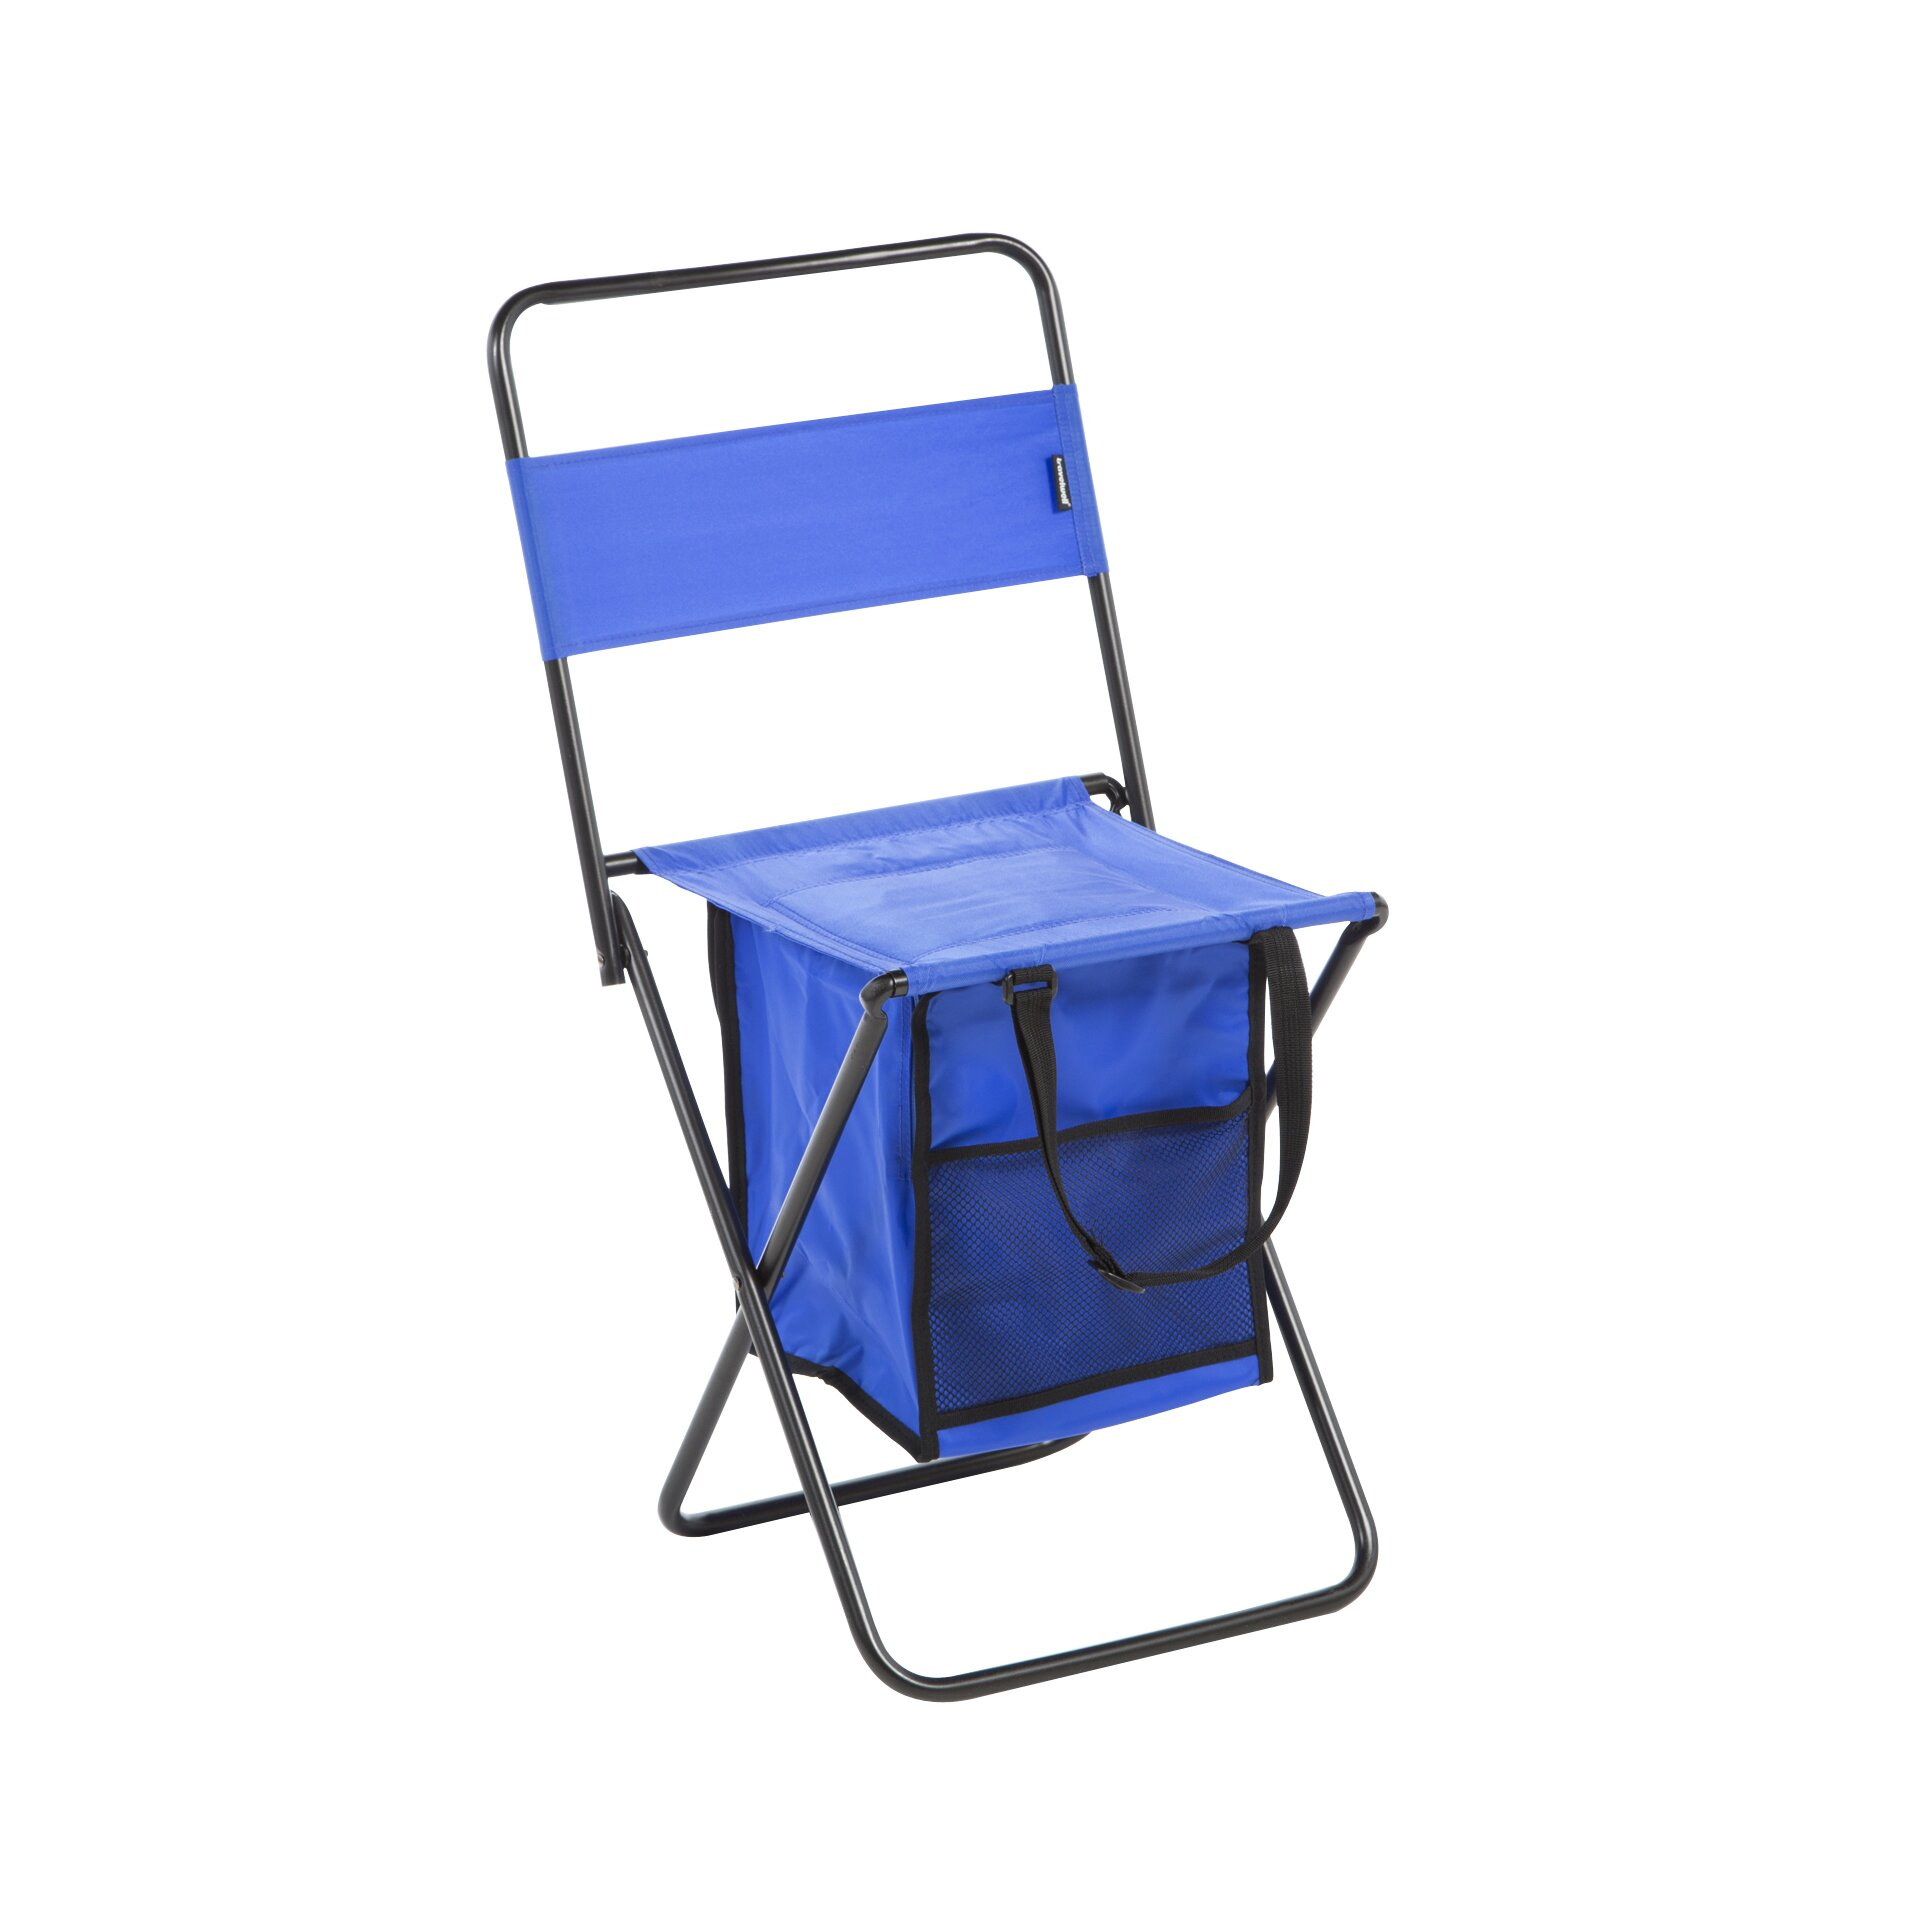 Symple Stuff Folding Chair with Cooler & Reviews